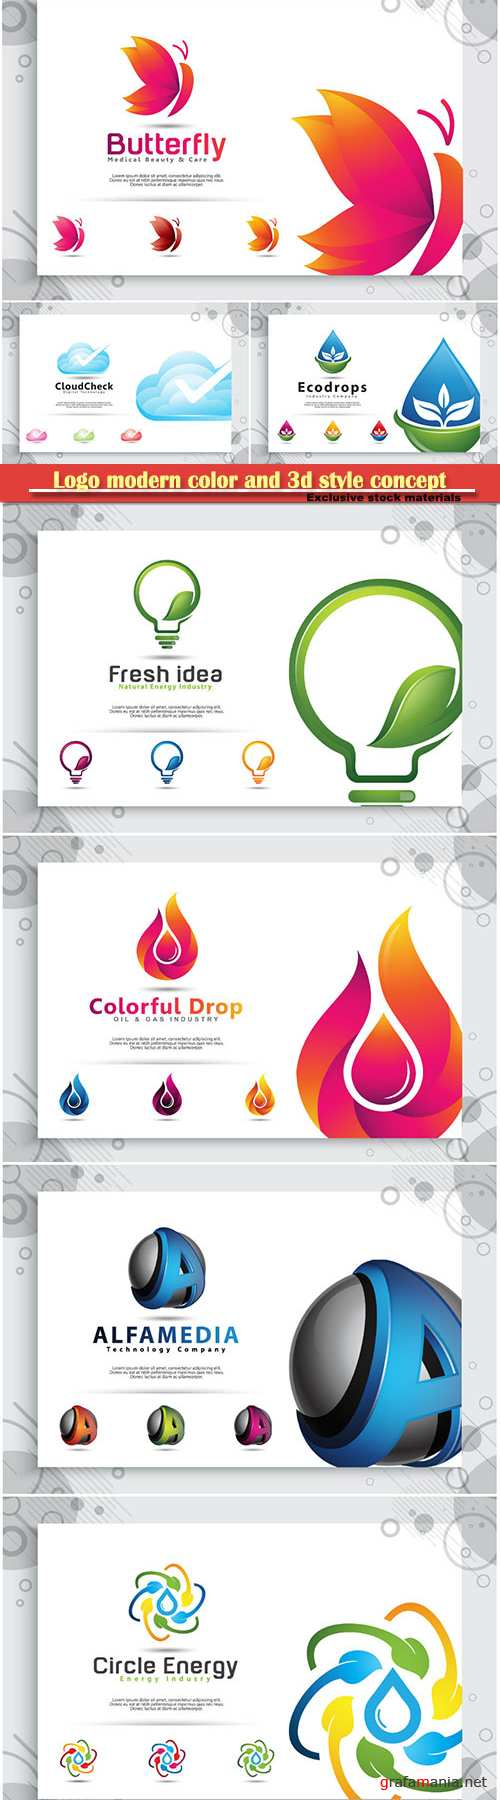 Logo modern color and 3d style concept, business and company identity # 2